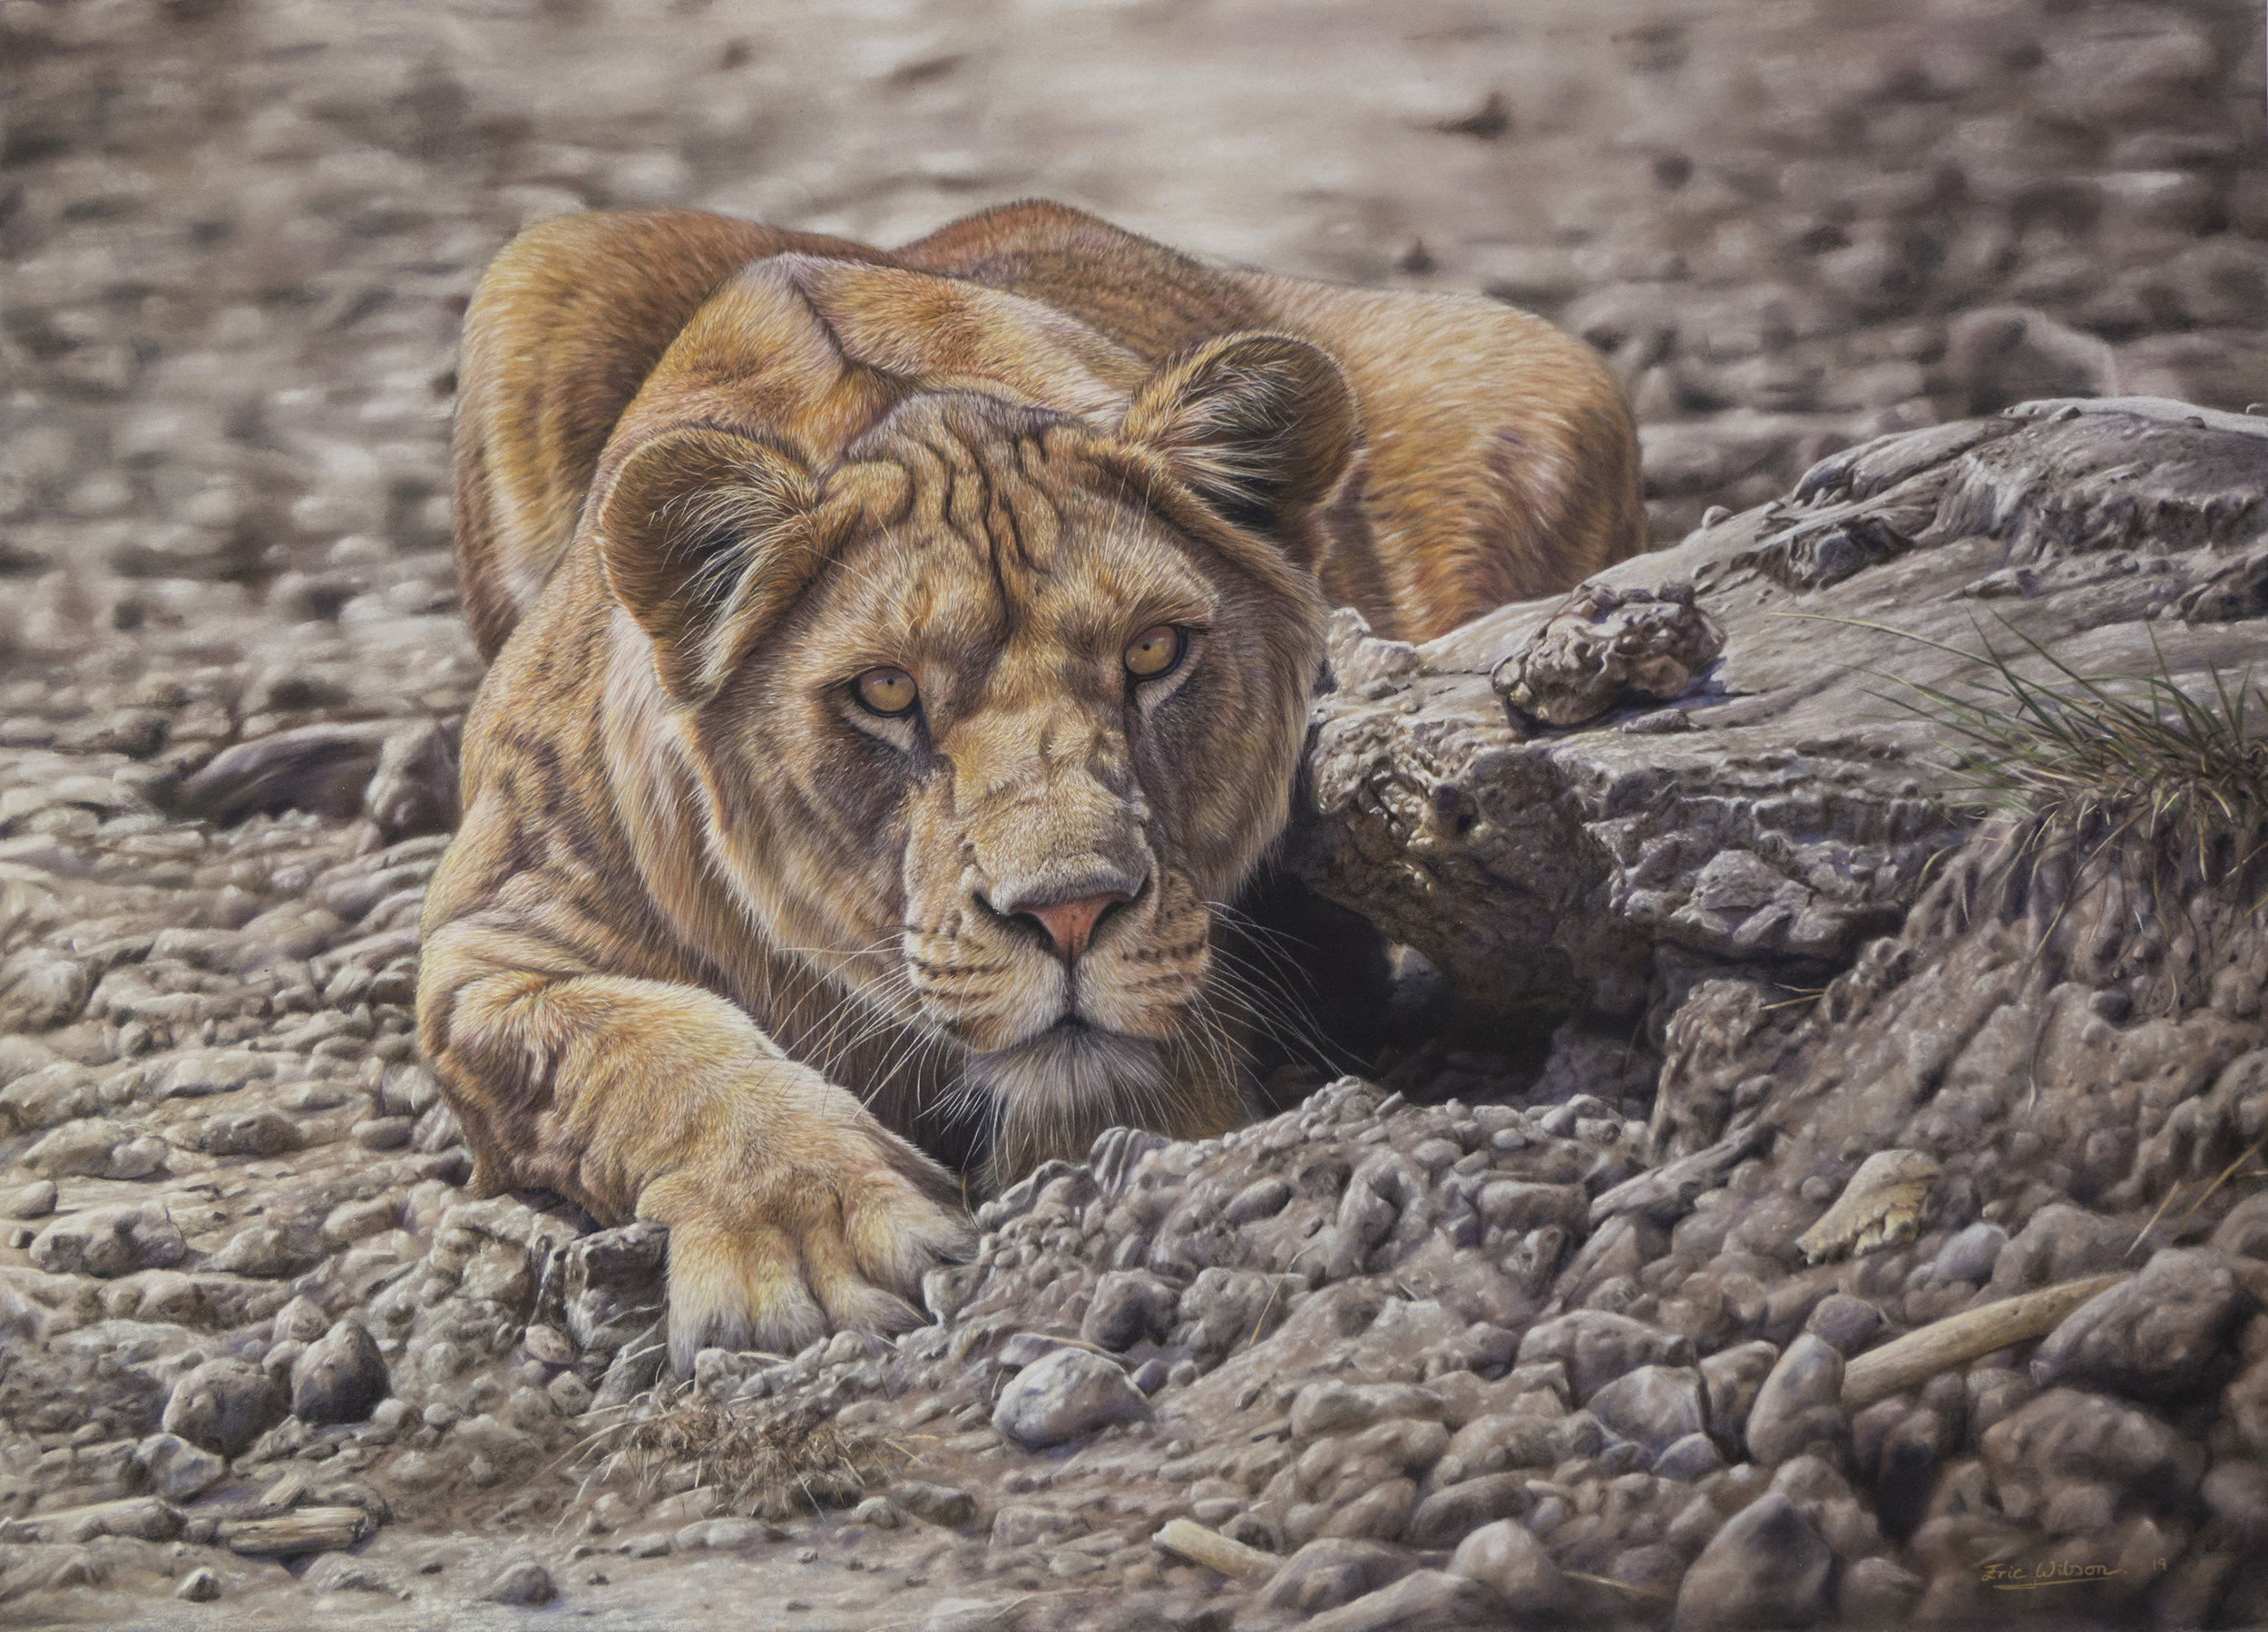 'Still Life' 'Still Life' Pastel on Pastelmat. 19 x 27 inches. A lioness crouches motionless as she waits in ambush on the African plains. The struggle for survival is not an easy one. She knows to remain perfectly still behind the only available cover in this barren landscape. Not just tooth and claw but intelligence and teamwork will be required to ensure success.  In the foreground I have scattered bones, symbolic of the countless struggles that have taken place over millions of years.  If you look closely you may notice part of a jawbone with two molar teeth. A human perhaps, suggesting that we too are locked into the struggle and just like the lioness, our success on this planet is far from guaranteed.